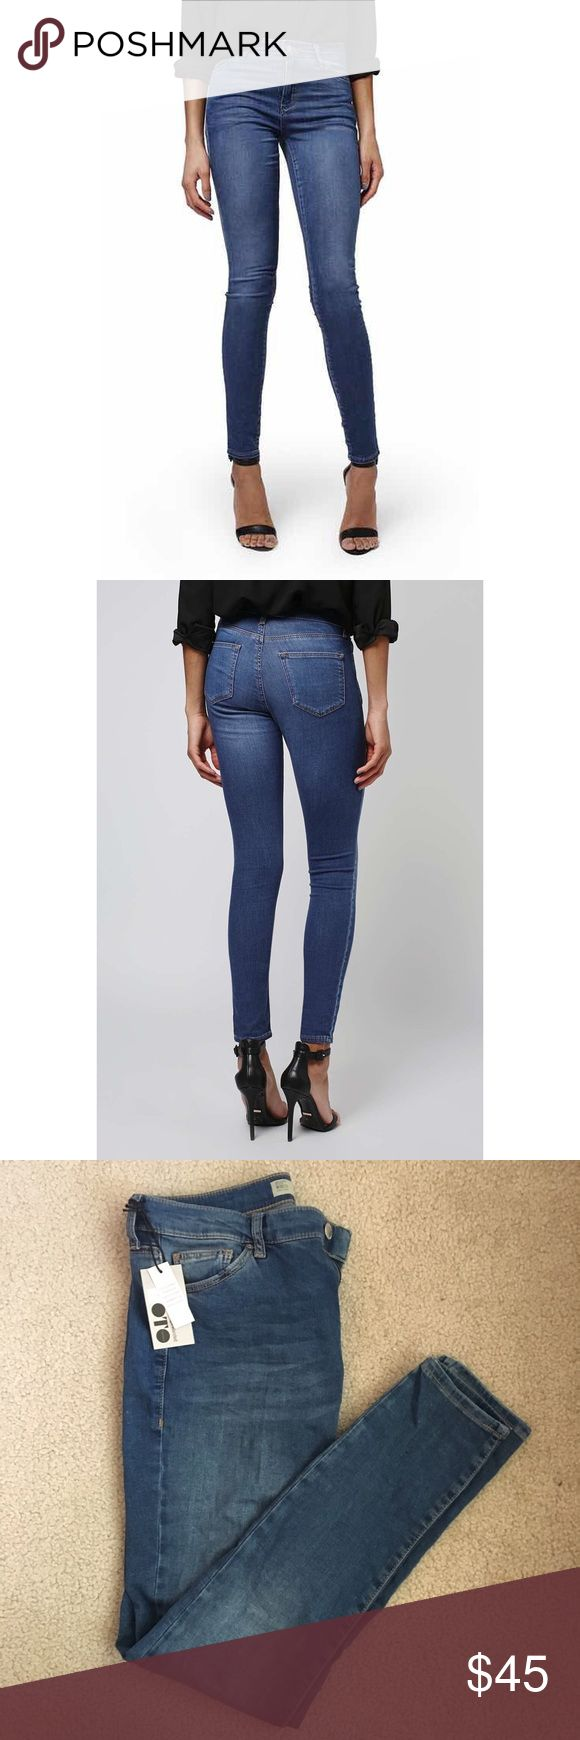 Topshop Leigh Ankle Grazer Jeans Never worn, tags still attached. Topshop Jeans Skinny